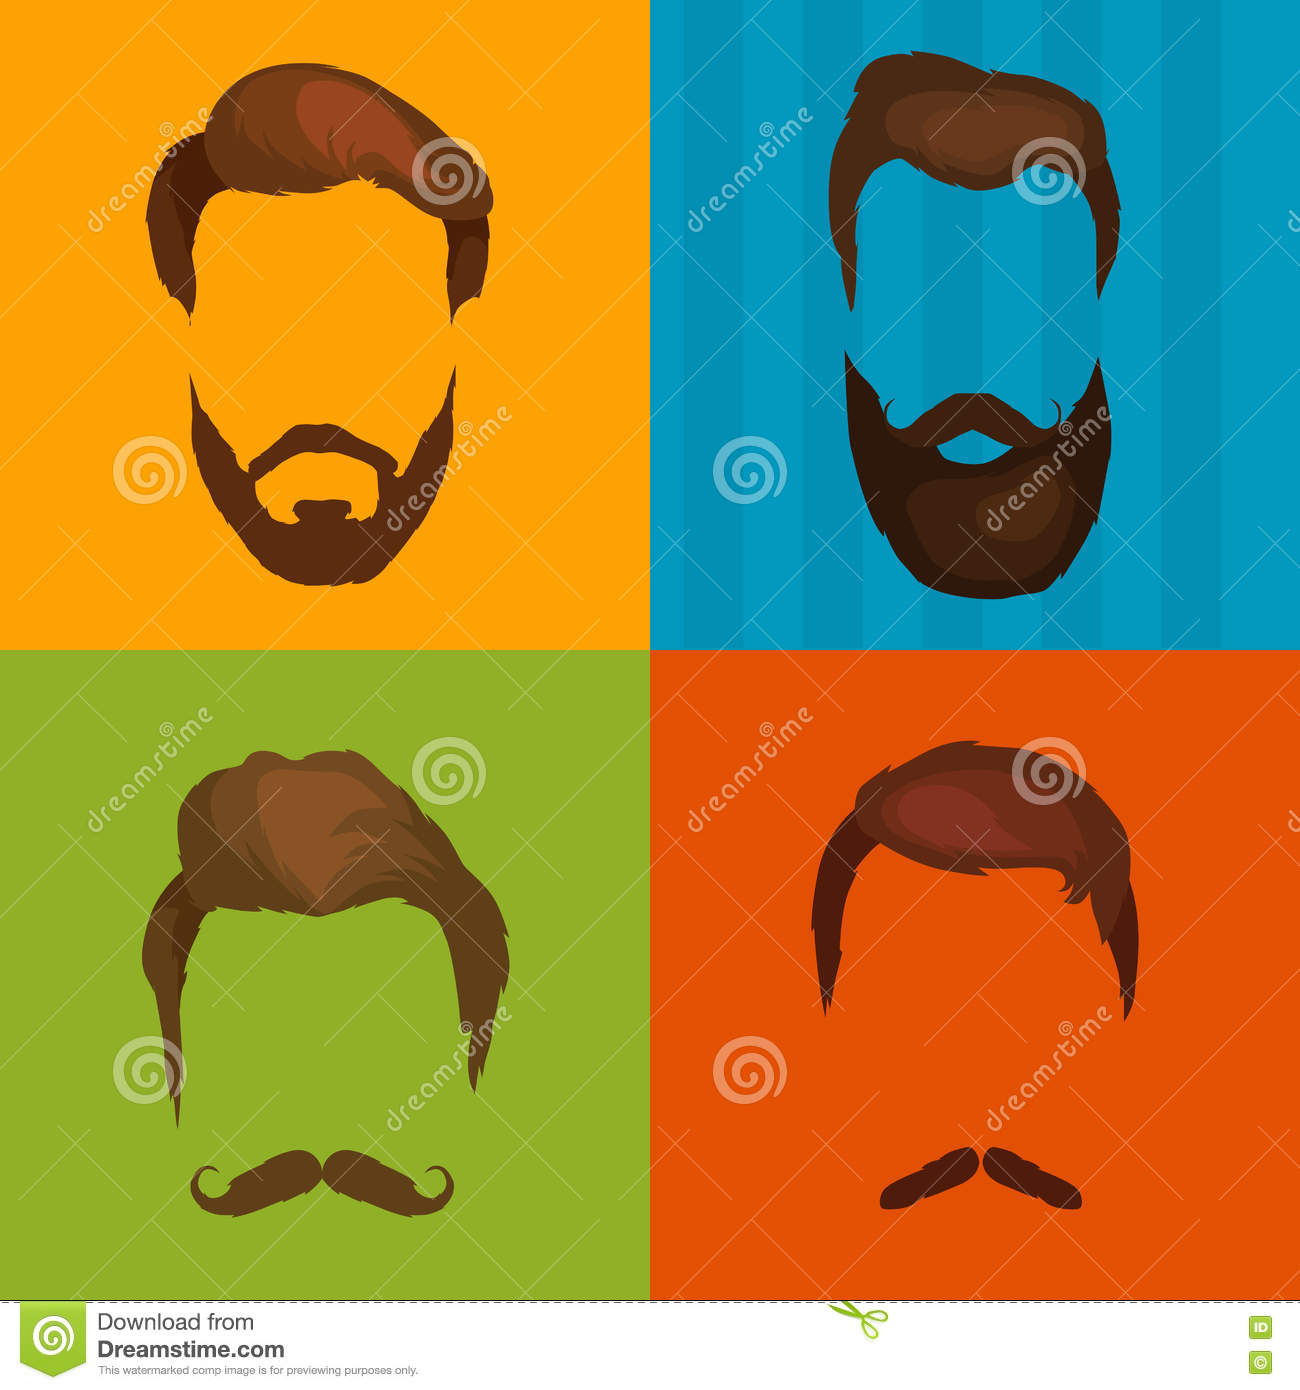 Hipster Hair And Beards Fashion Vector Illustration Set